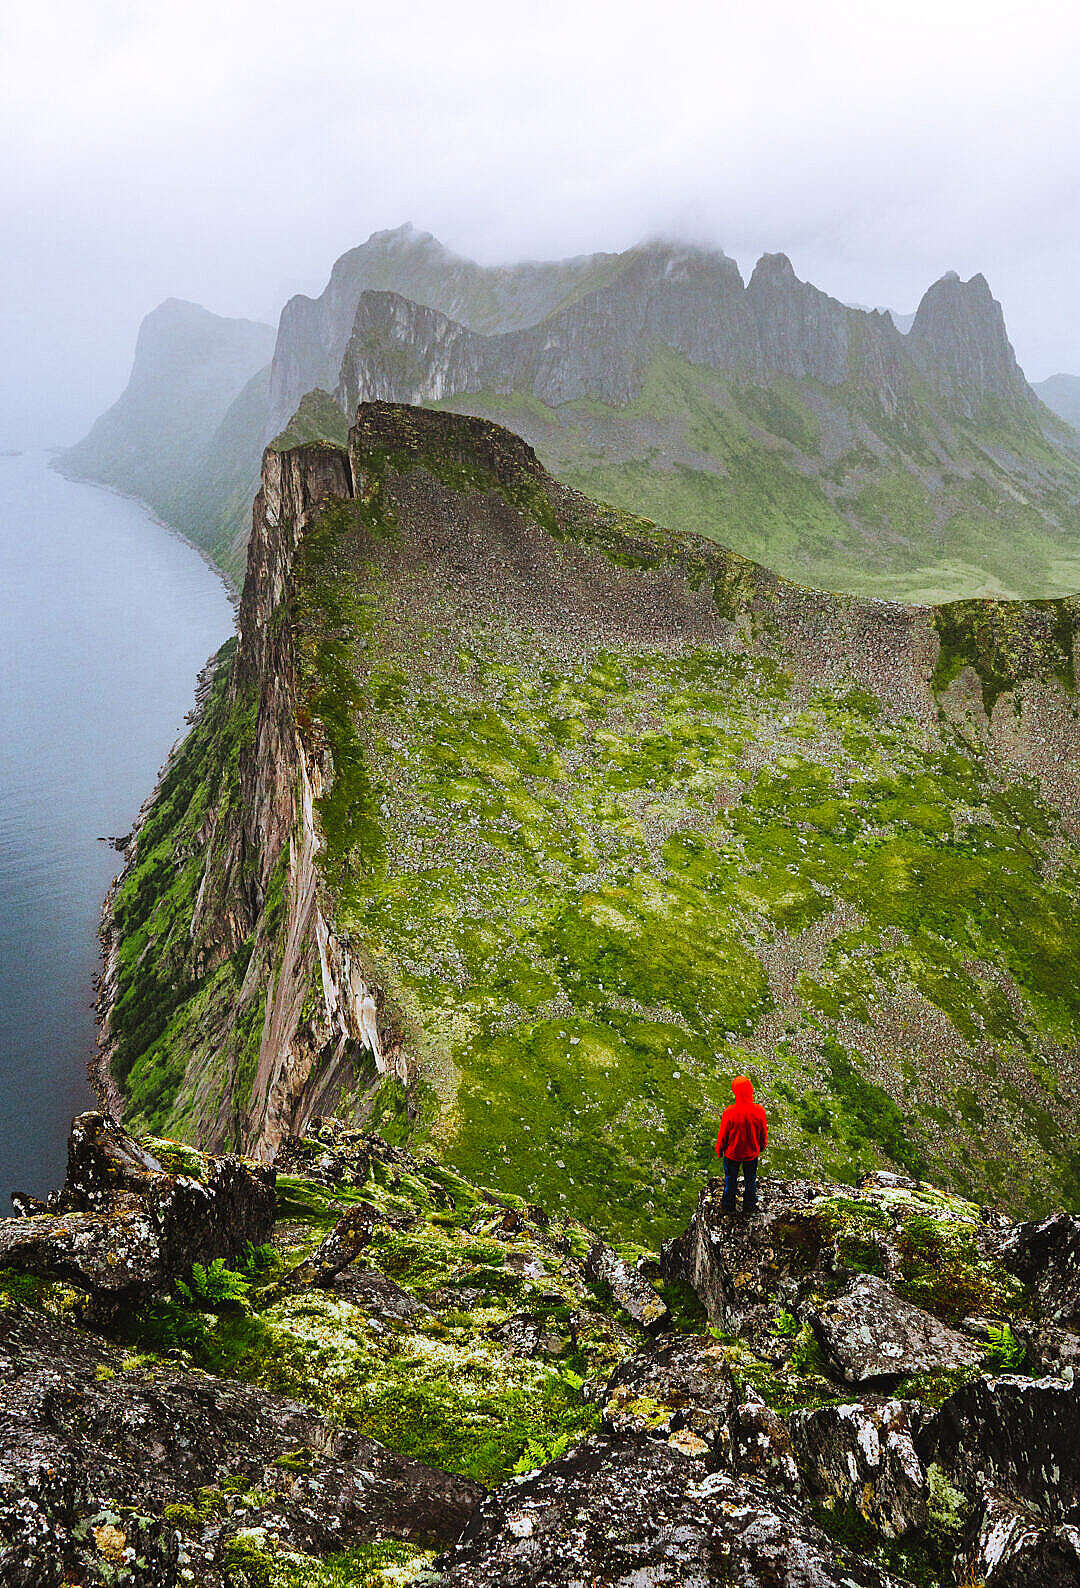 Download Hiker Enjoying the View on the Foggy Mountains Vertical FREE Stock Photo